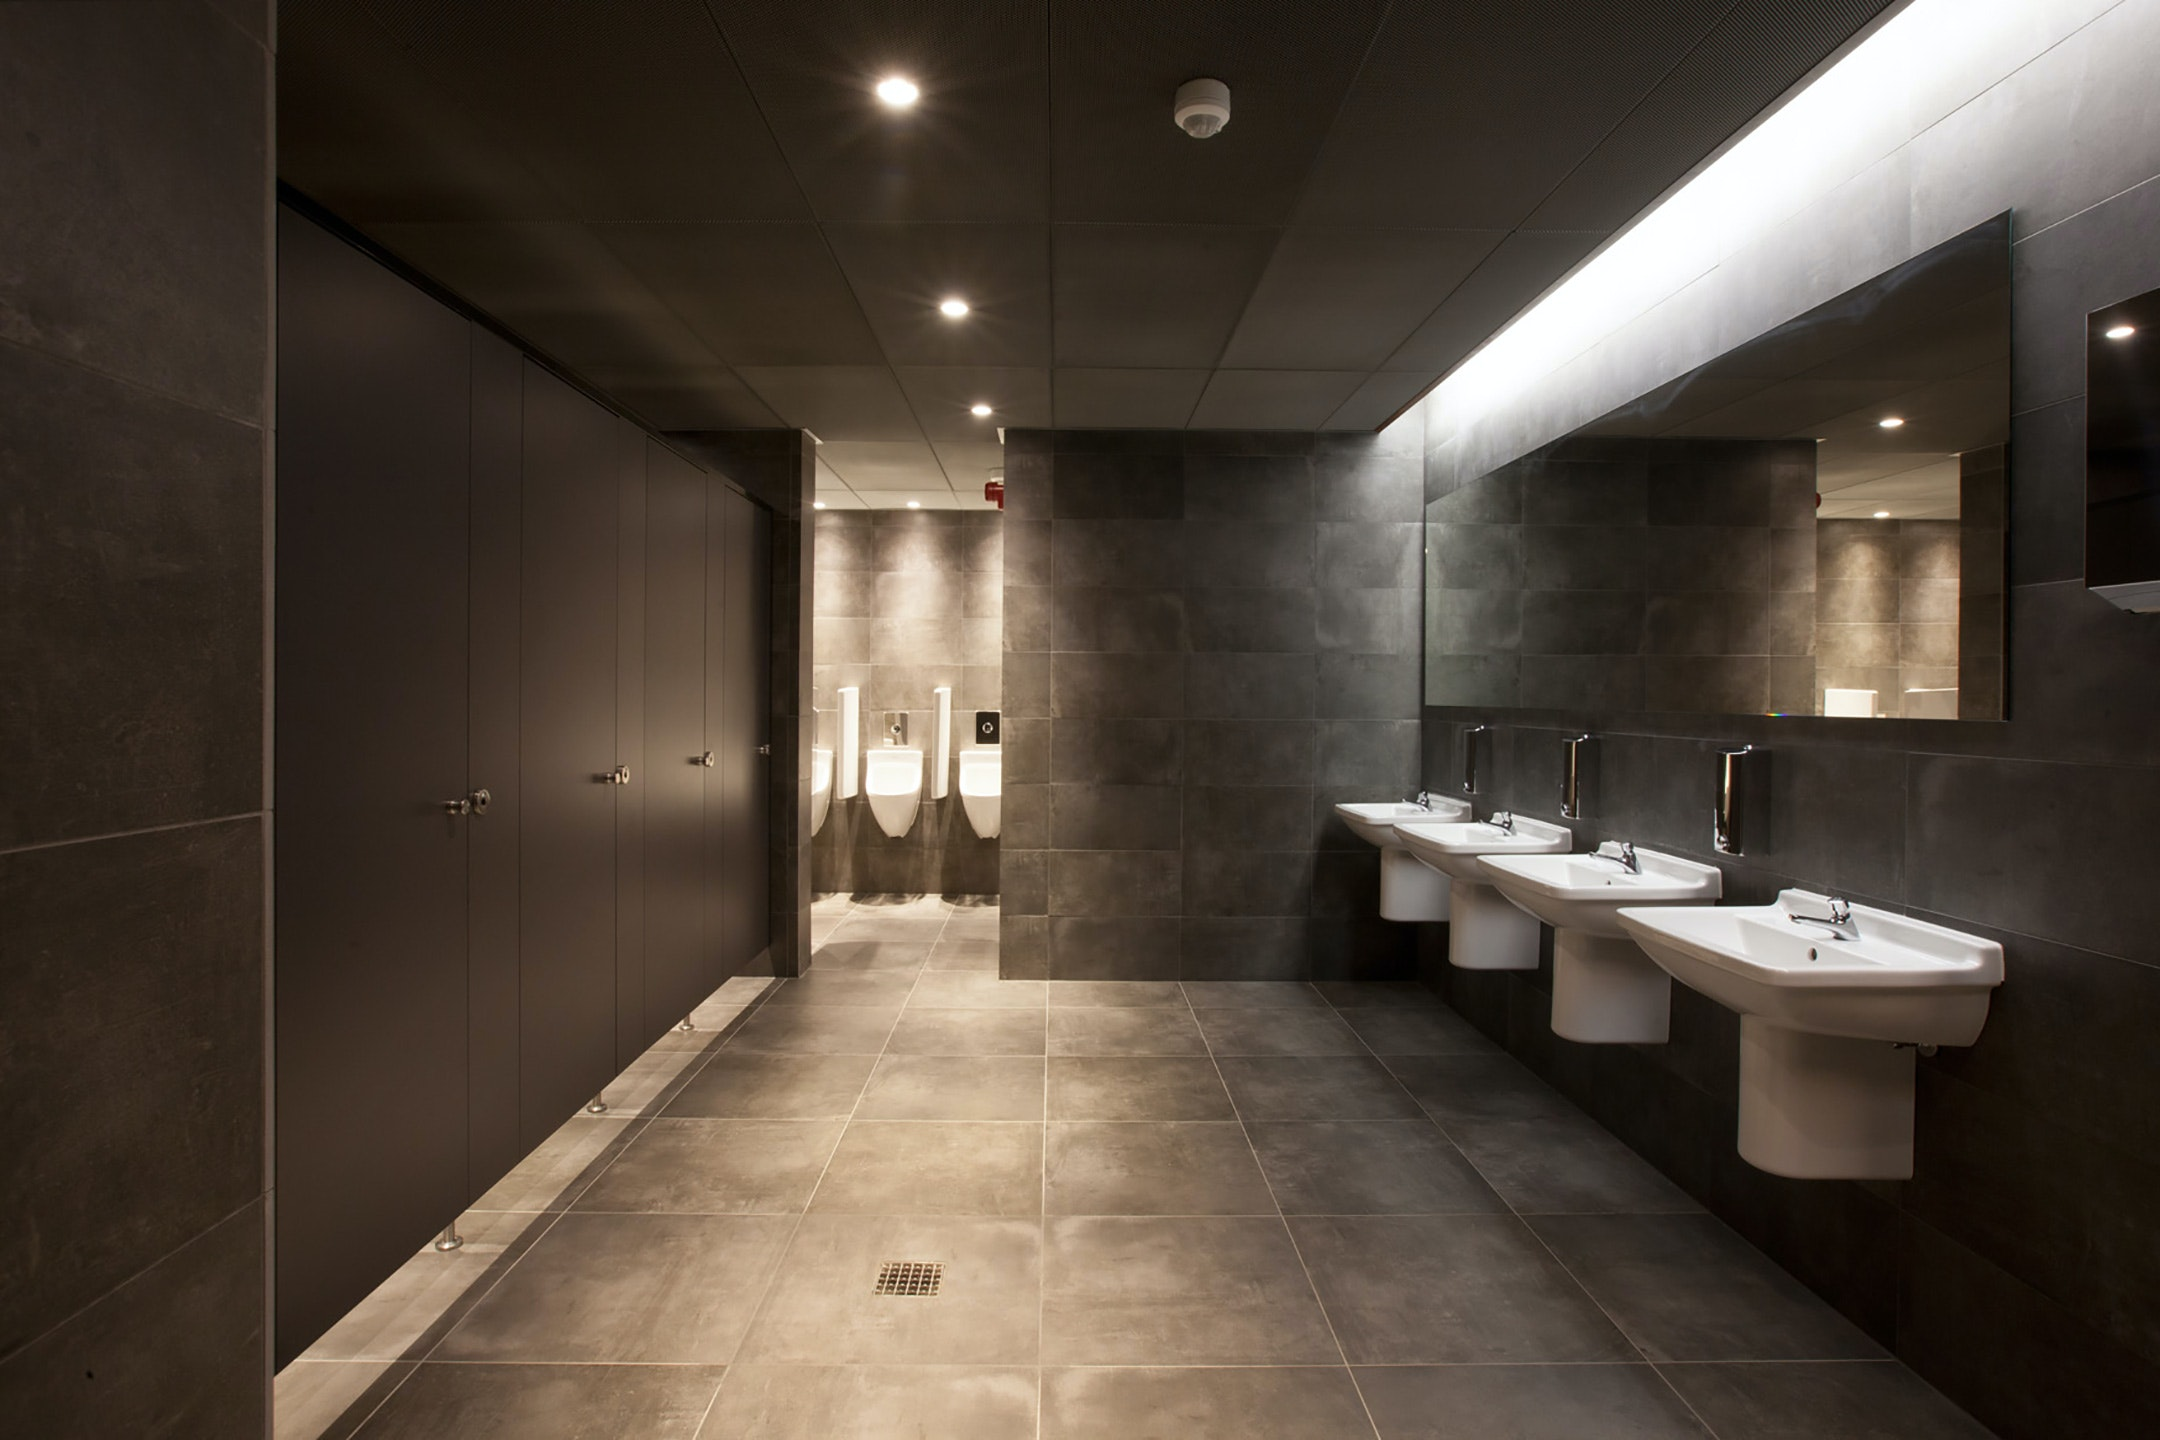 Commercial Bathrooms Are Taking Cues From Residential Design